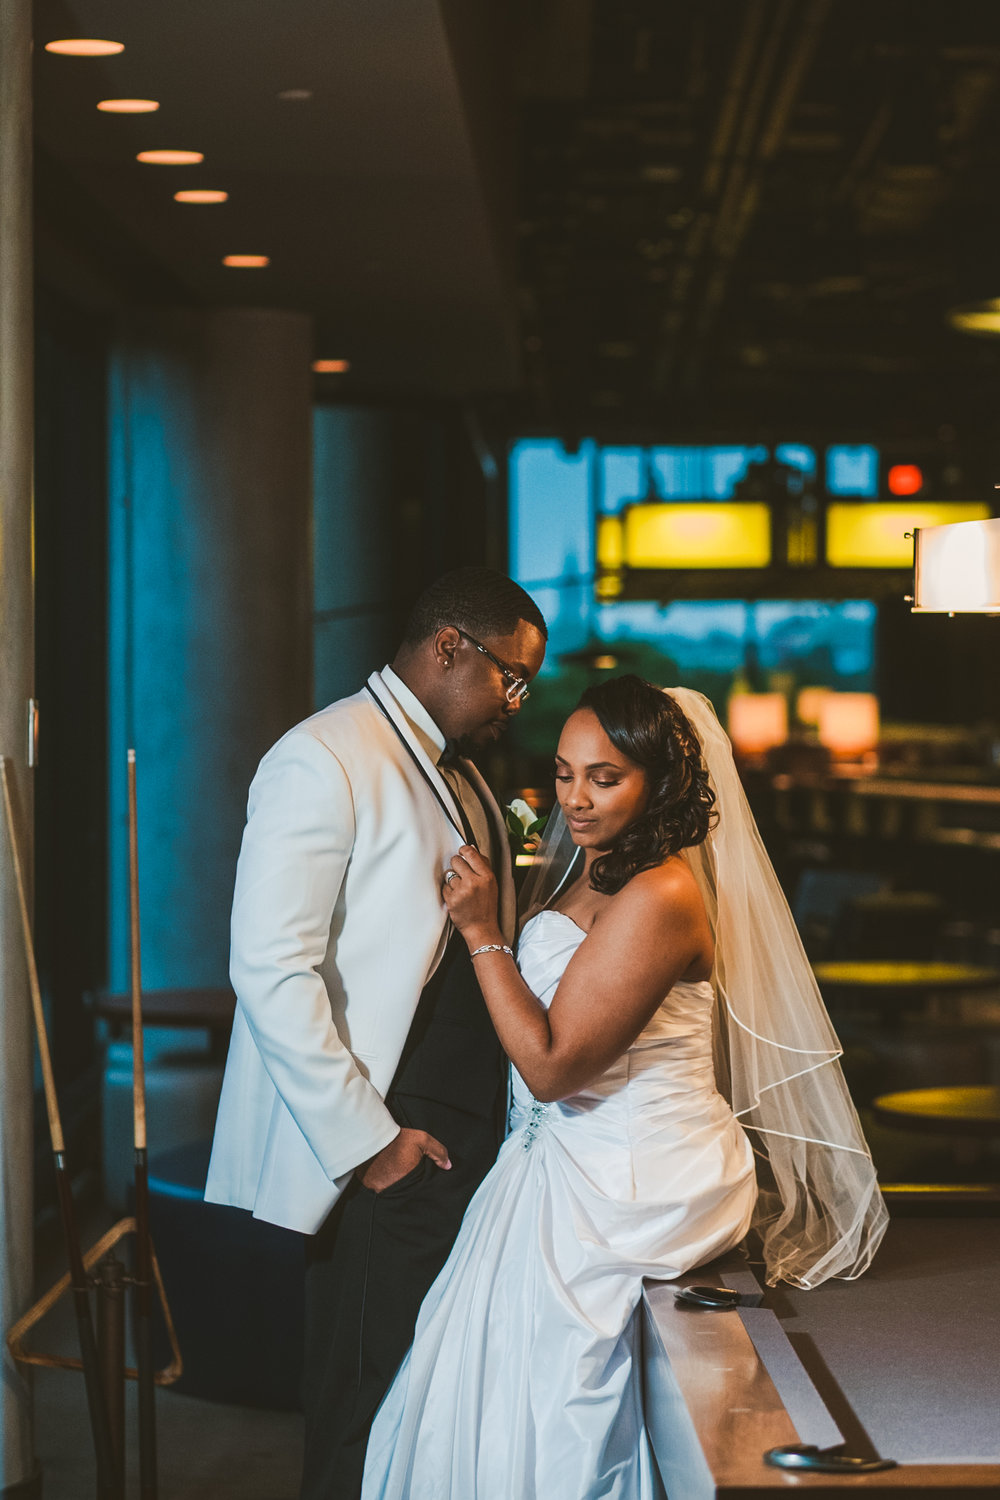 Toledo Couple and Wedding Photographers from Ohio at the Renaissance Hotel in Downtown for Wedding Day